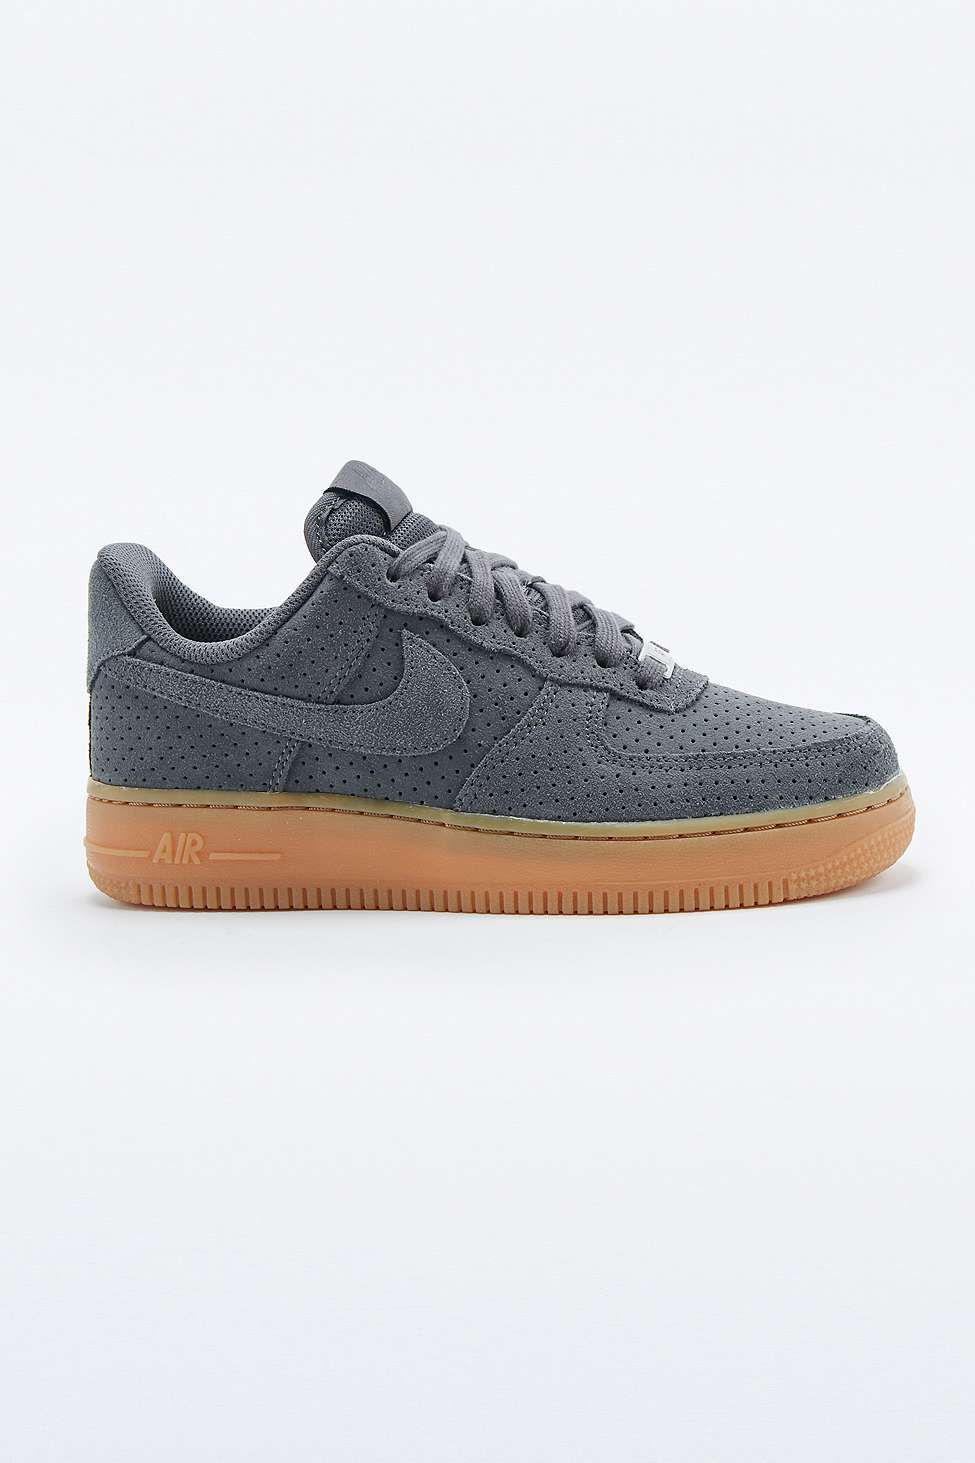 Nike - Baskets Air Force 1 en daim gris